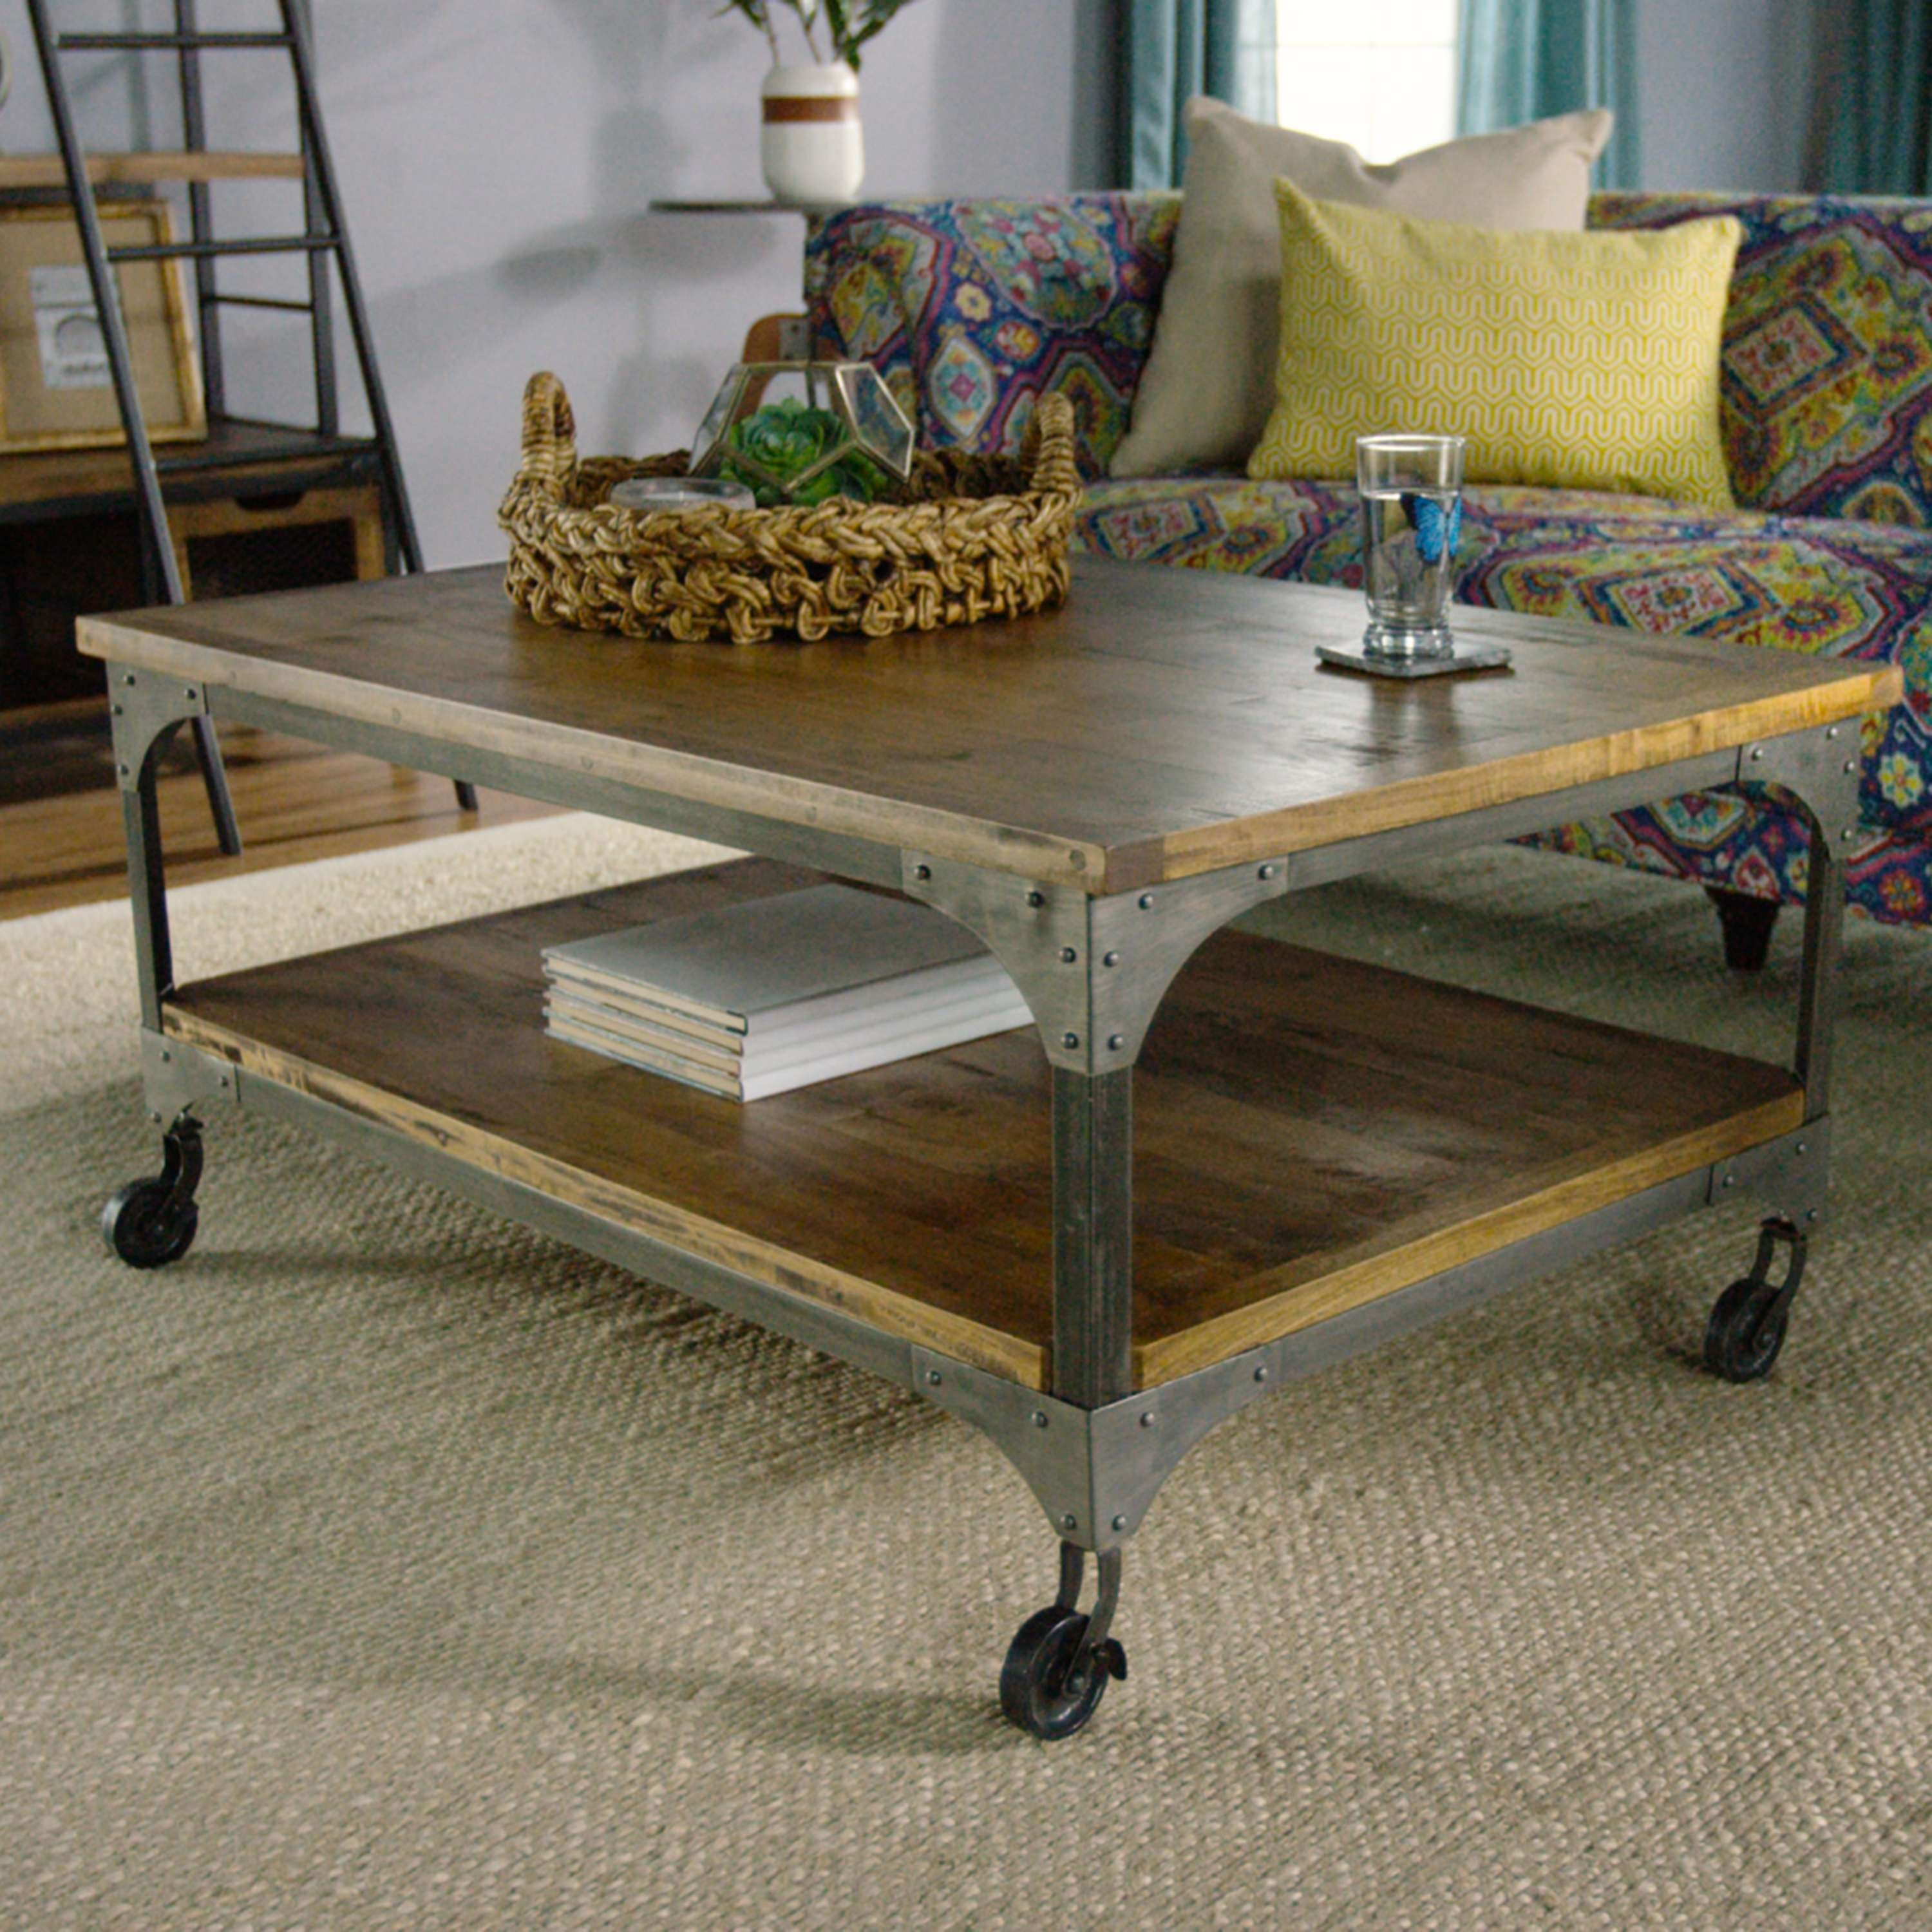 Most Up To Date Rustic Coffee Table With Wheels For Coffee Tables : Rustic Coffee Table With Wheels Lift Top Coffee (View 15 of 20)